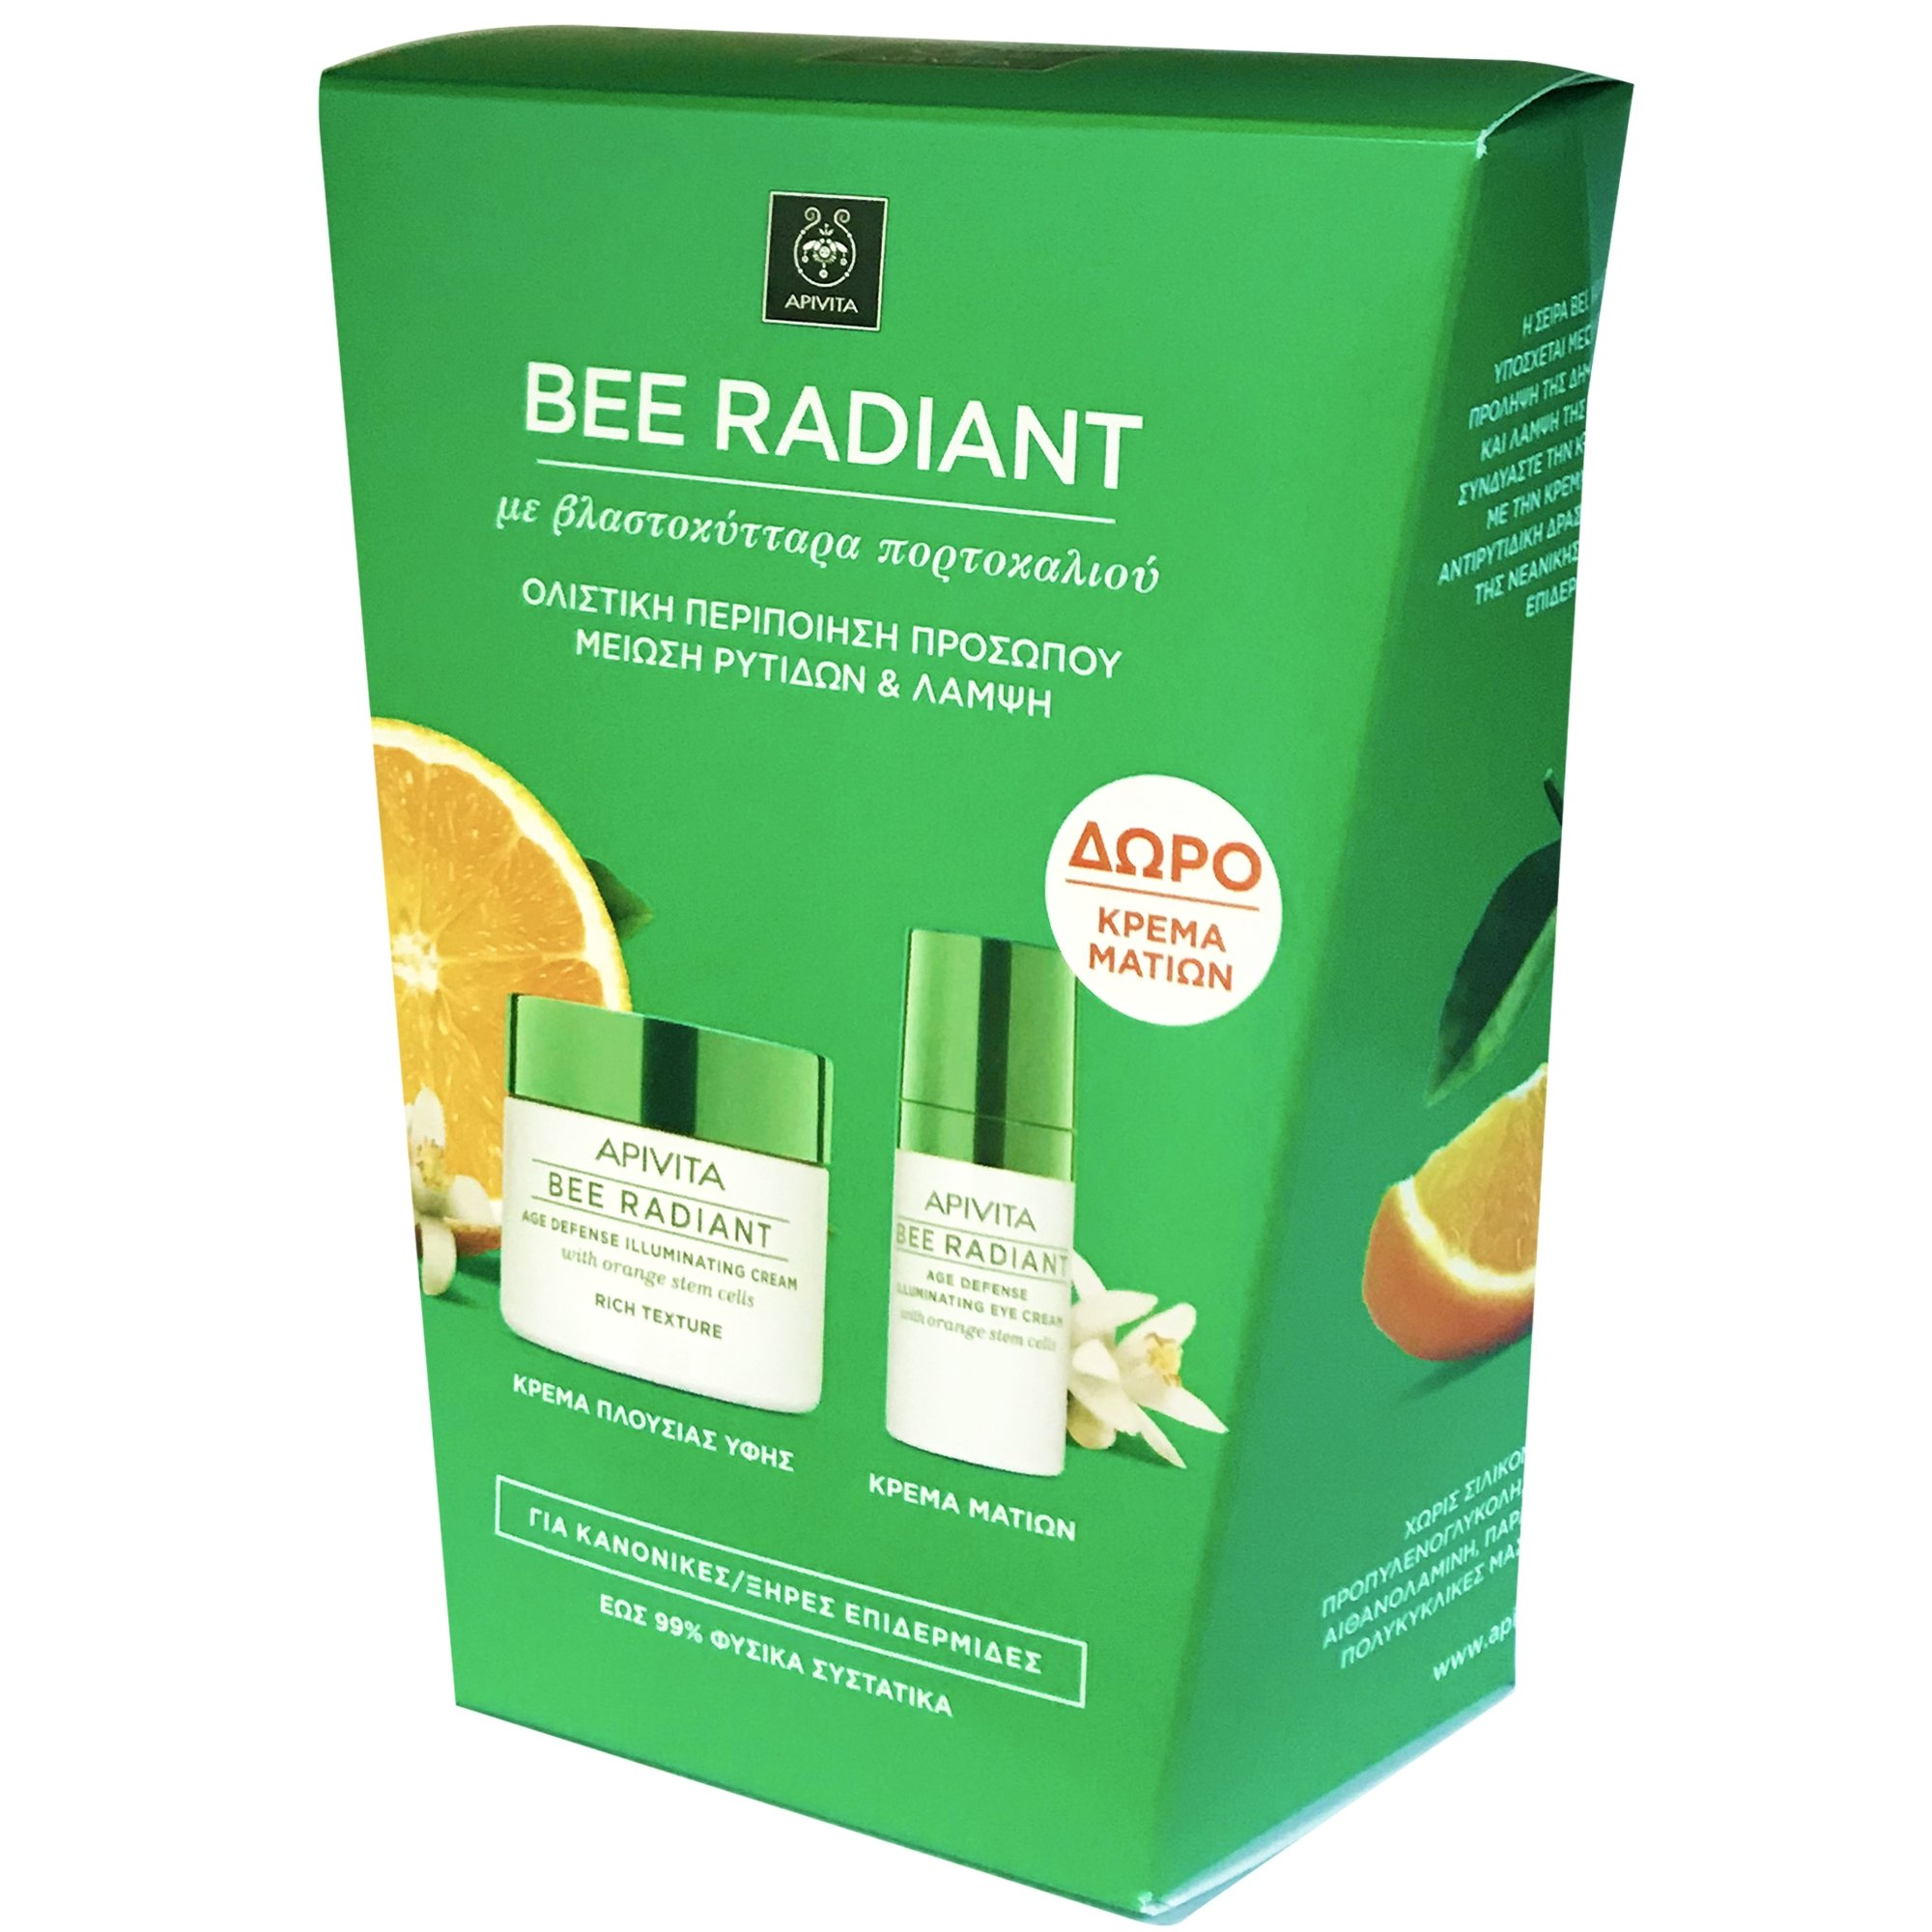 Apivita Πακέτο Προσφοράς Bee Radiant Cream, Rich Texture 50ml & Bee Radiant Eye Cream 15ml